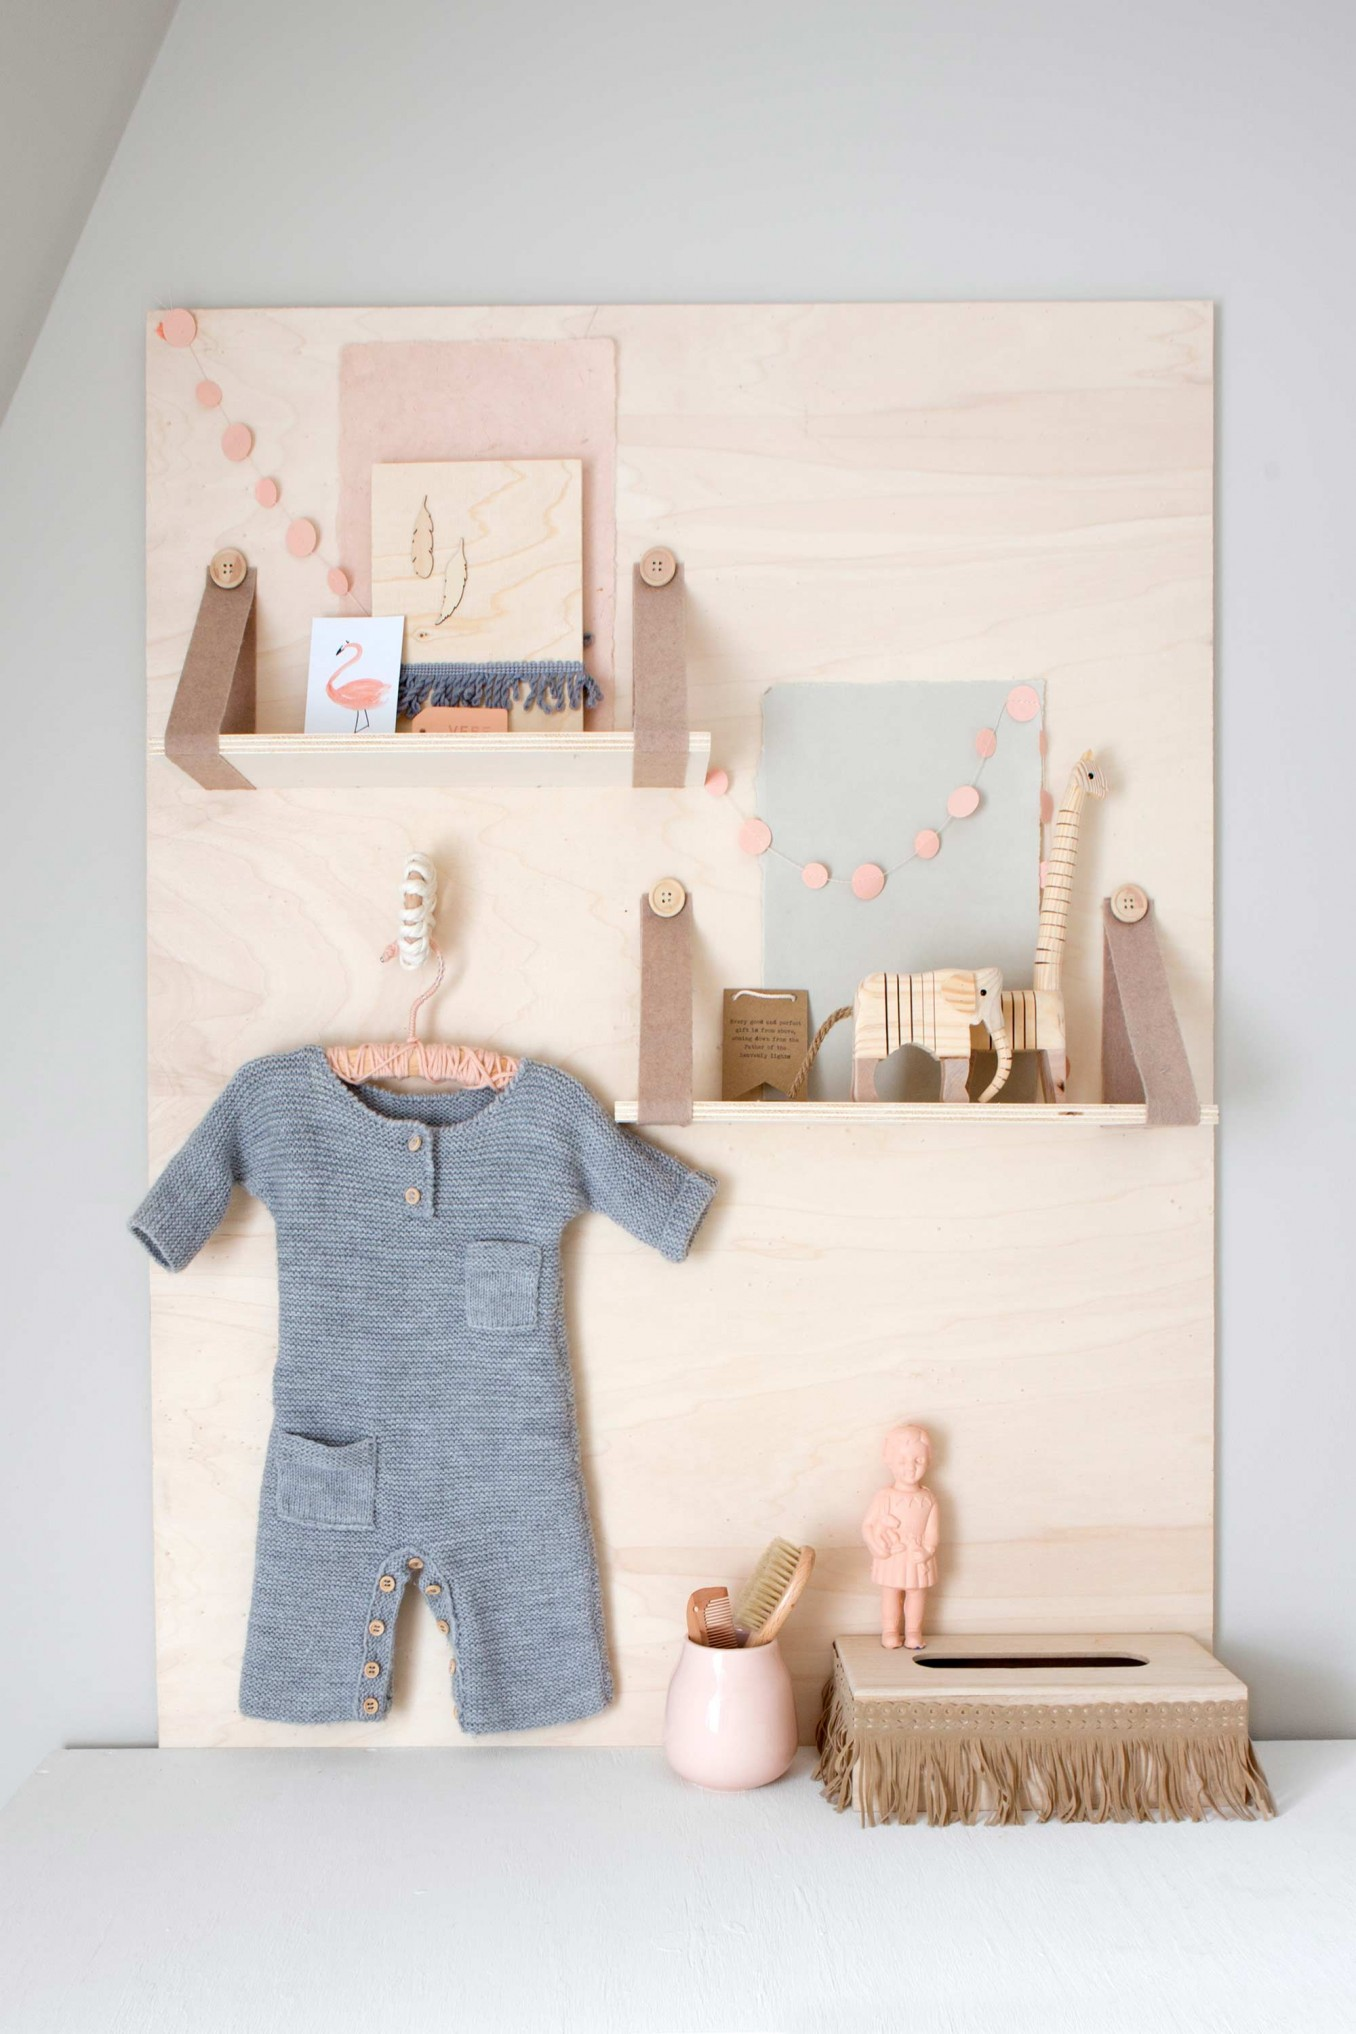 Good 5 Fun Shelf Ideas For A Kids Room (that You Can DIY)